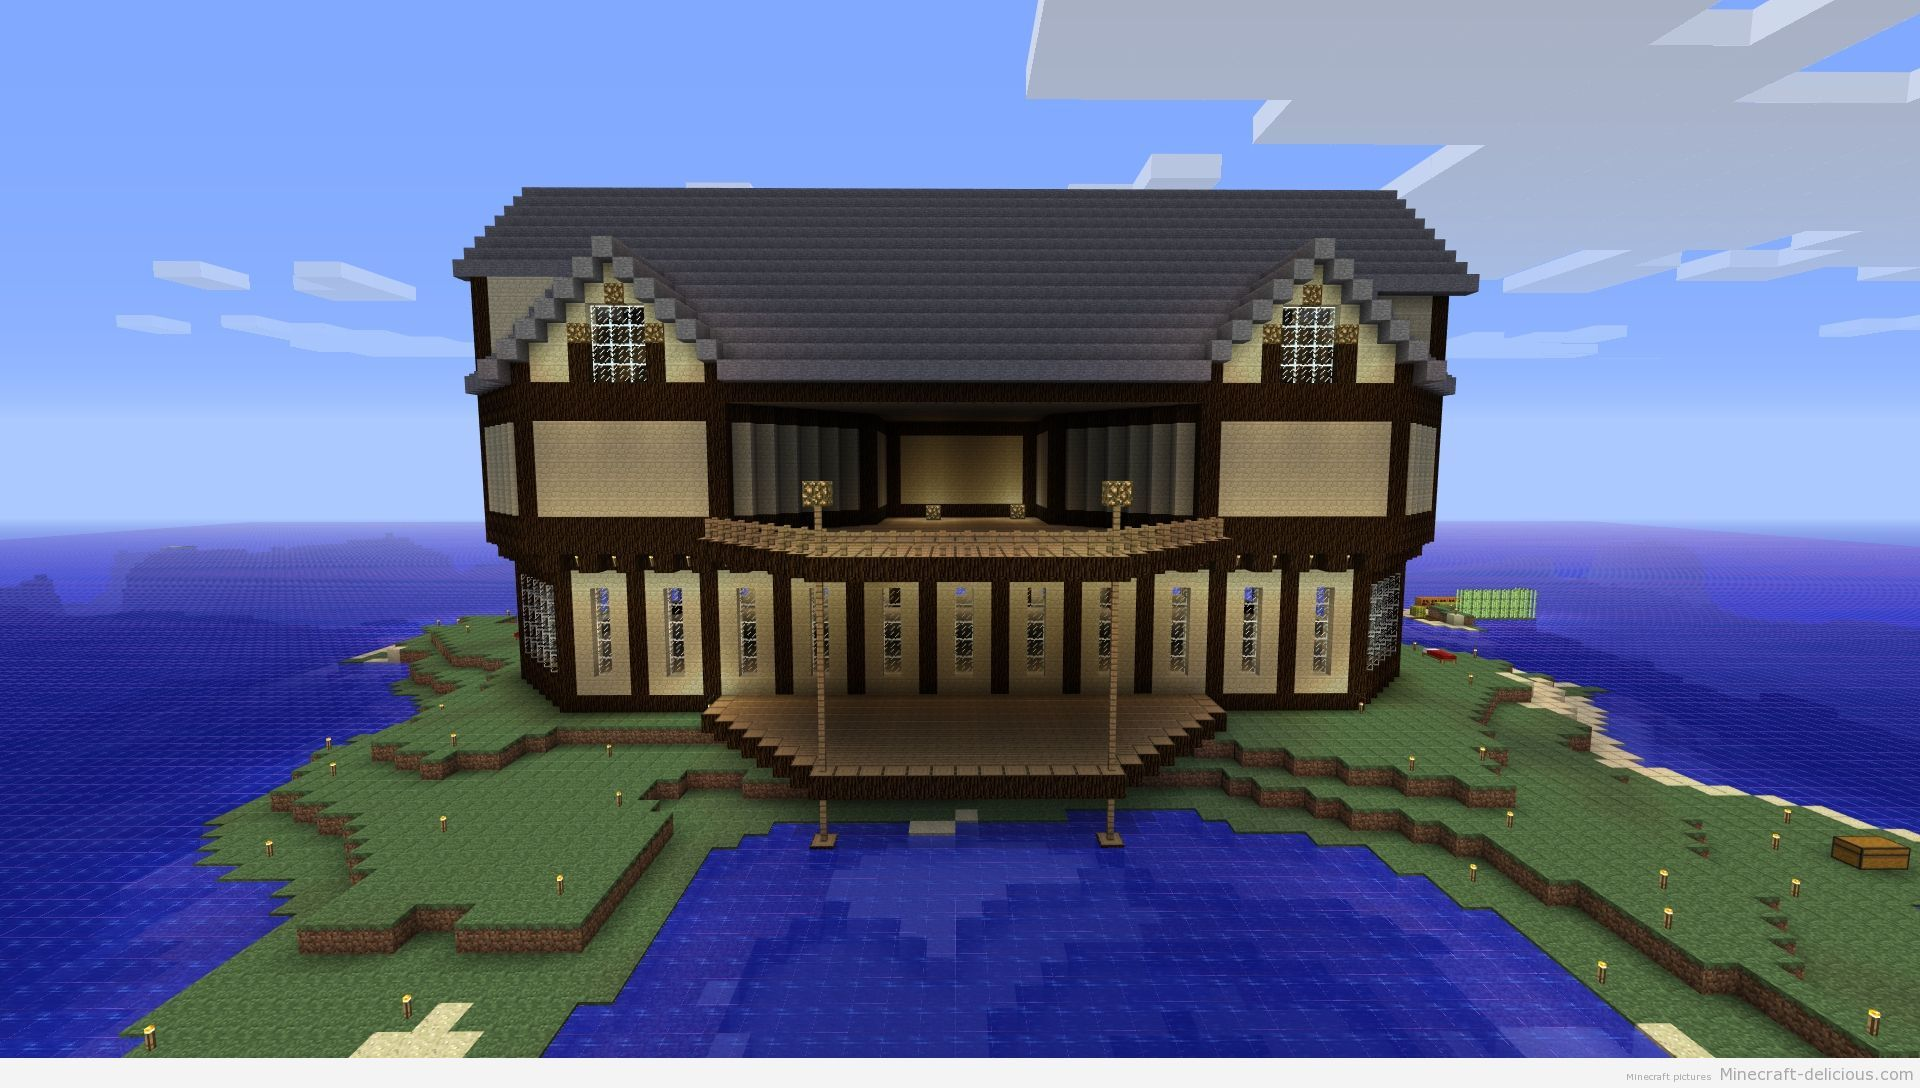 minecraft awesome houses   Minecraft Seeds For PC, Xbox ...